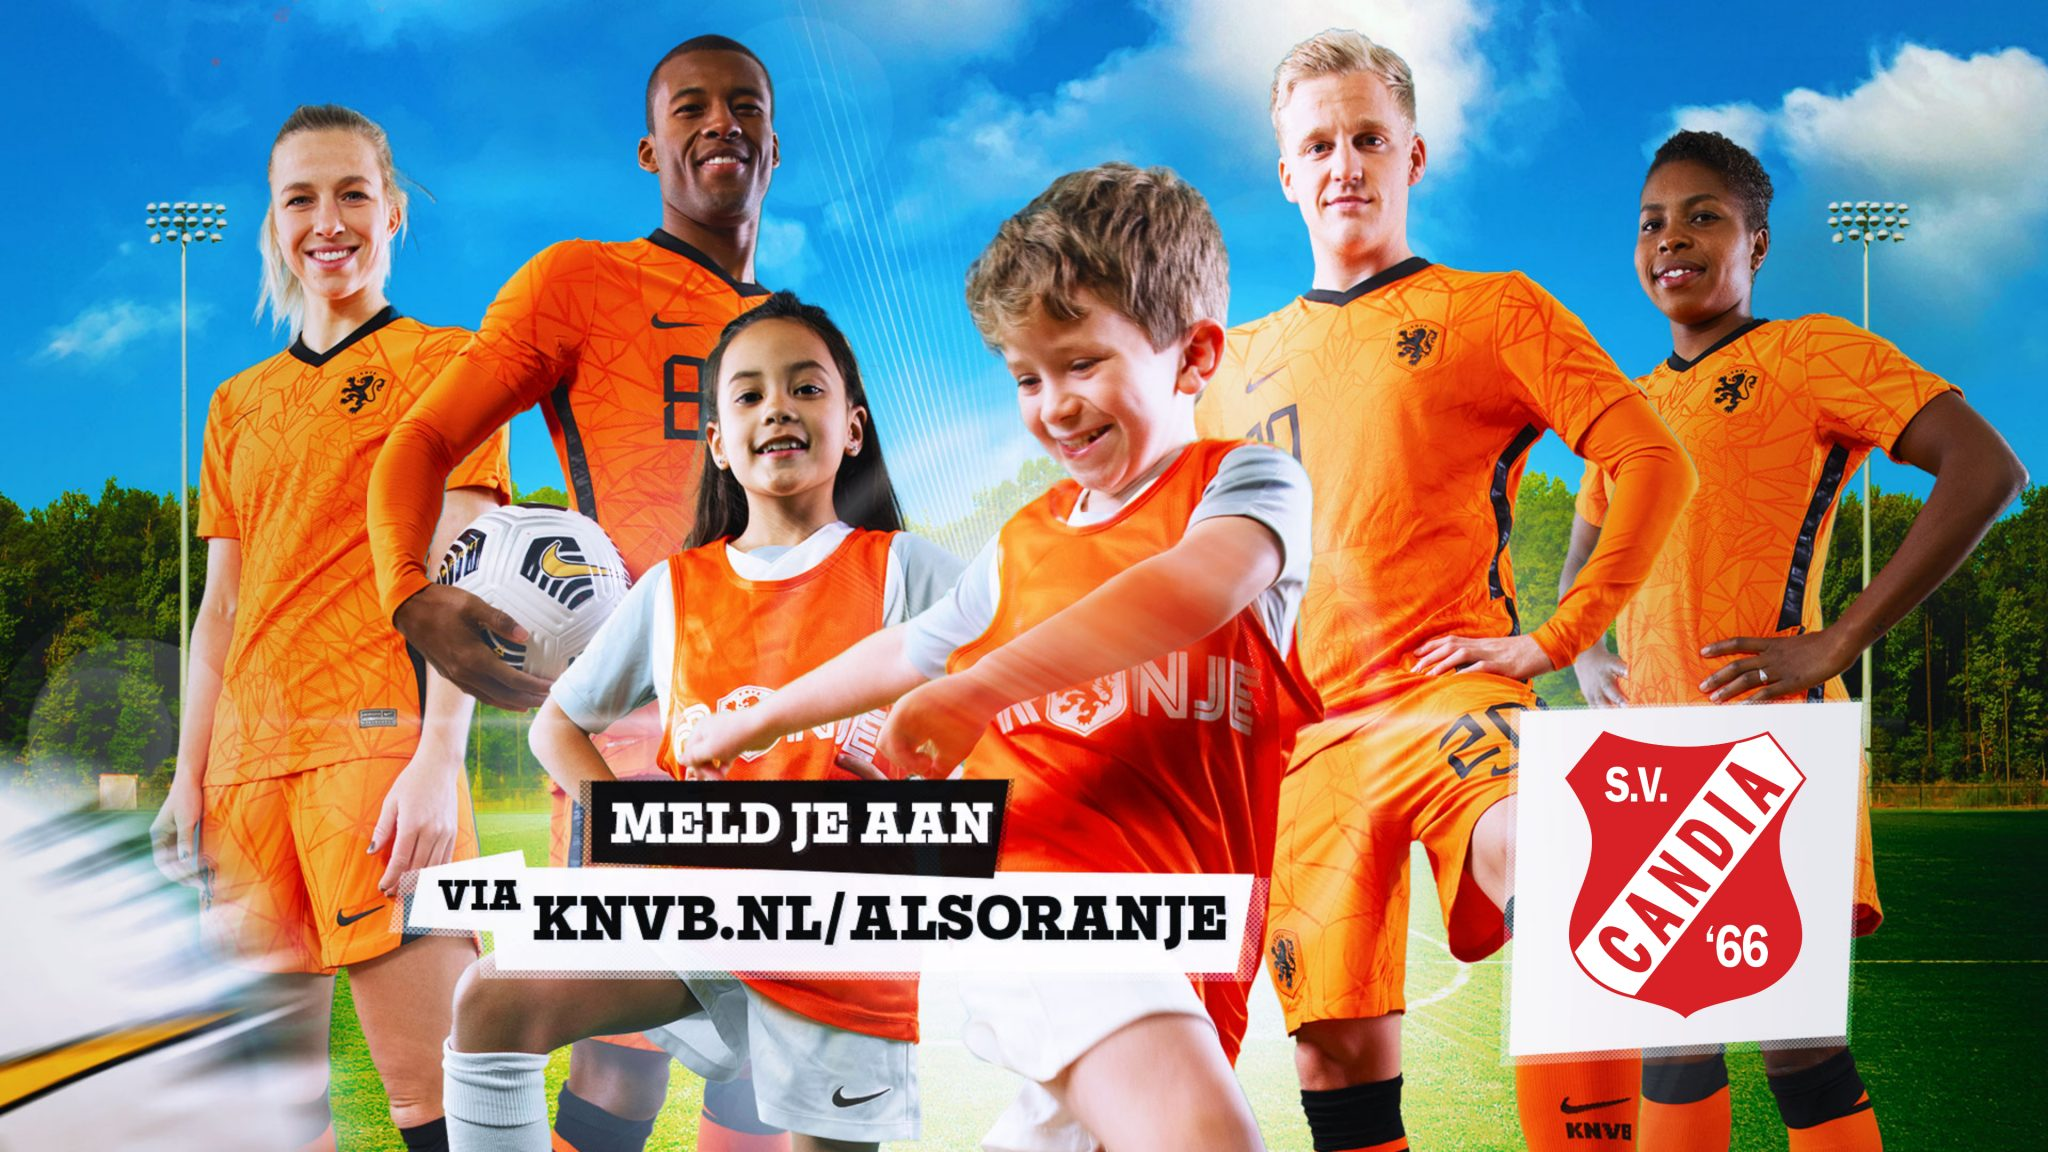 KNVB Oranjefestival 21 april